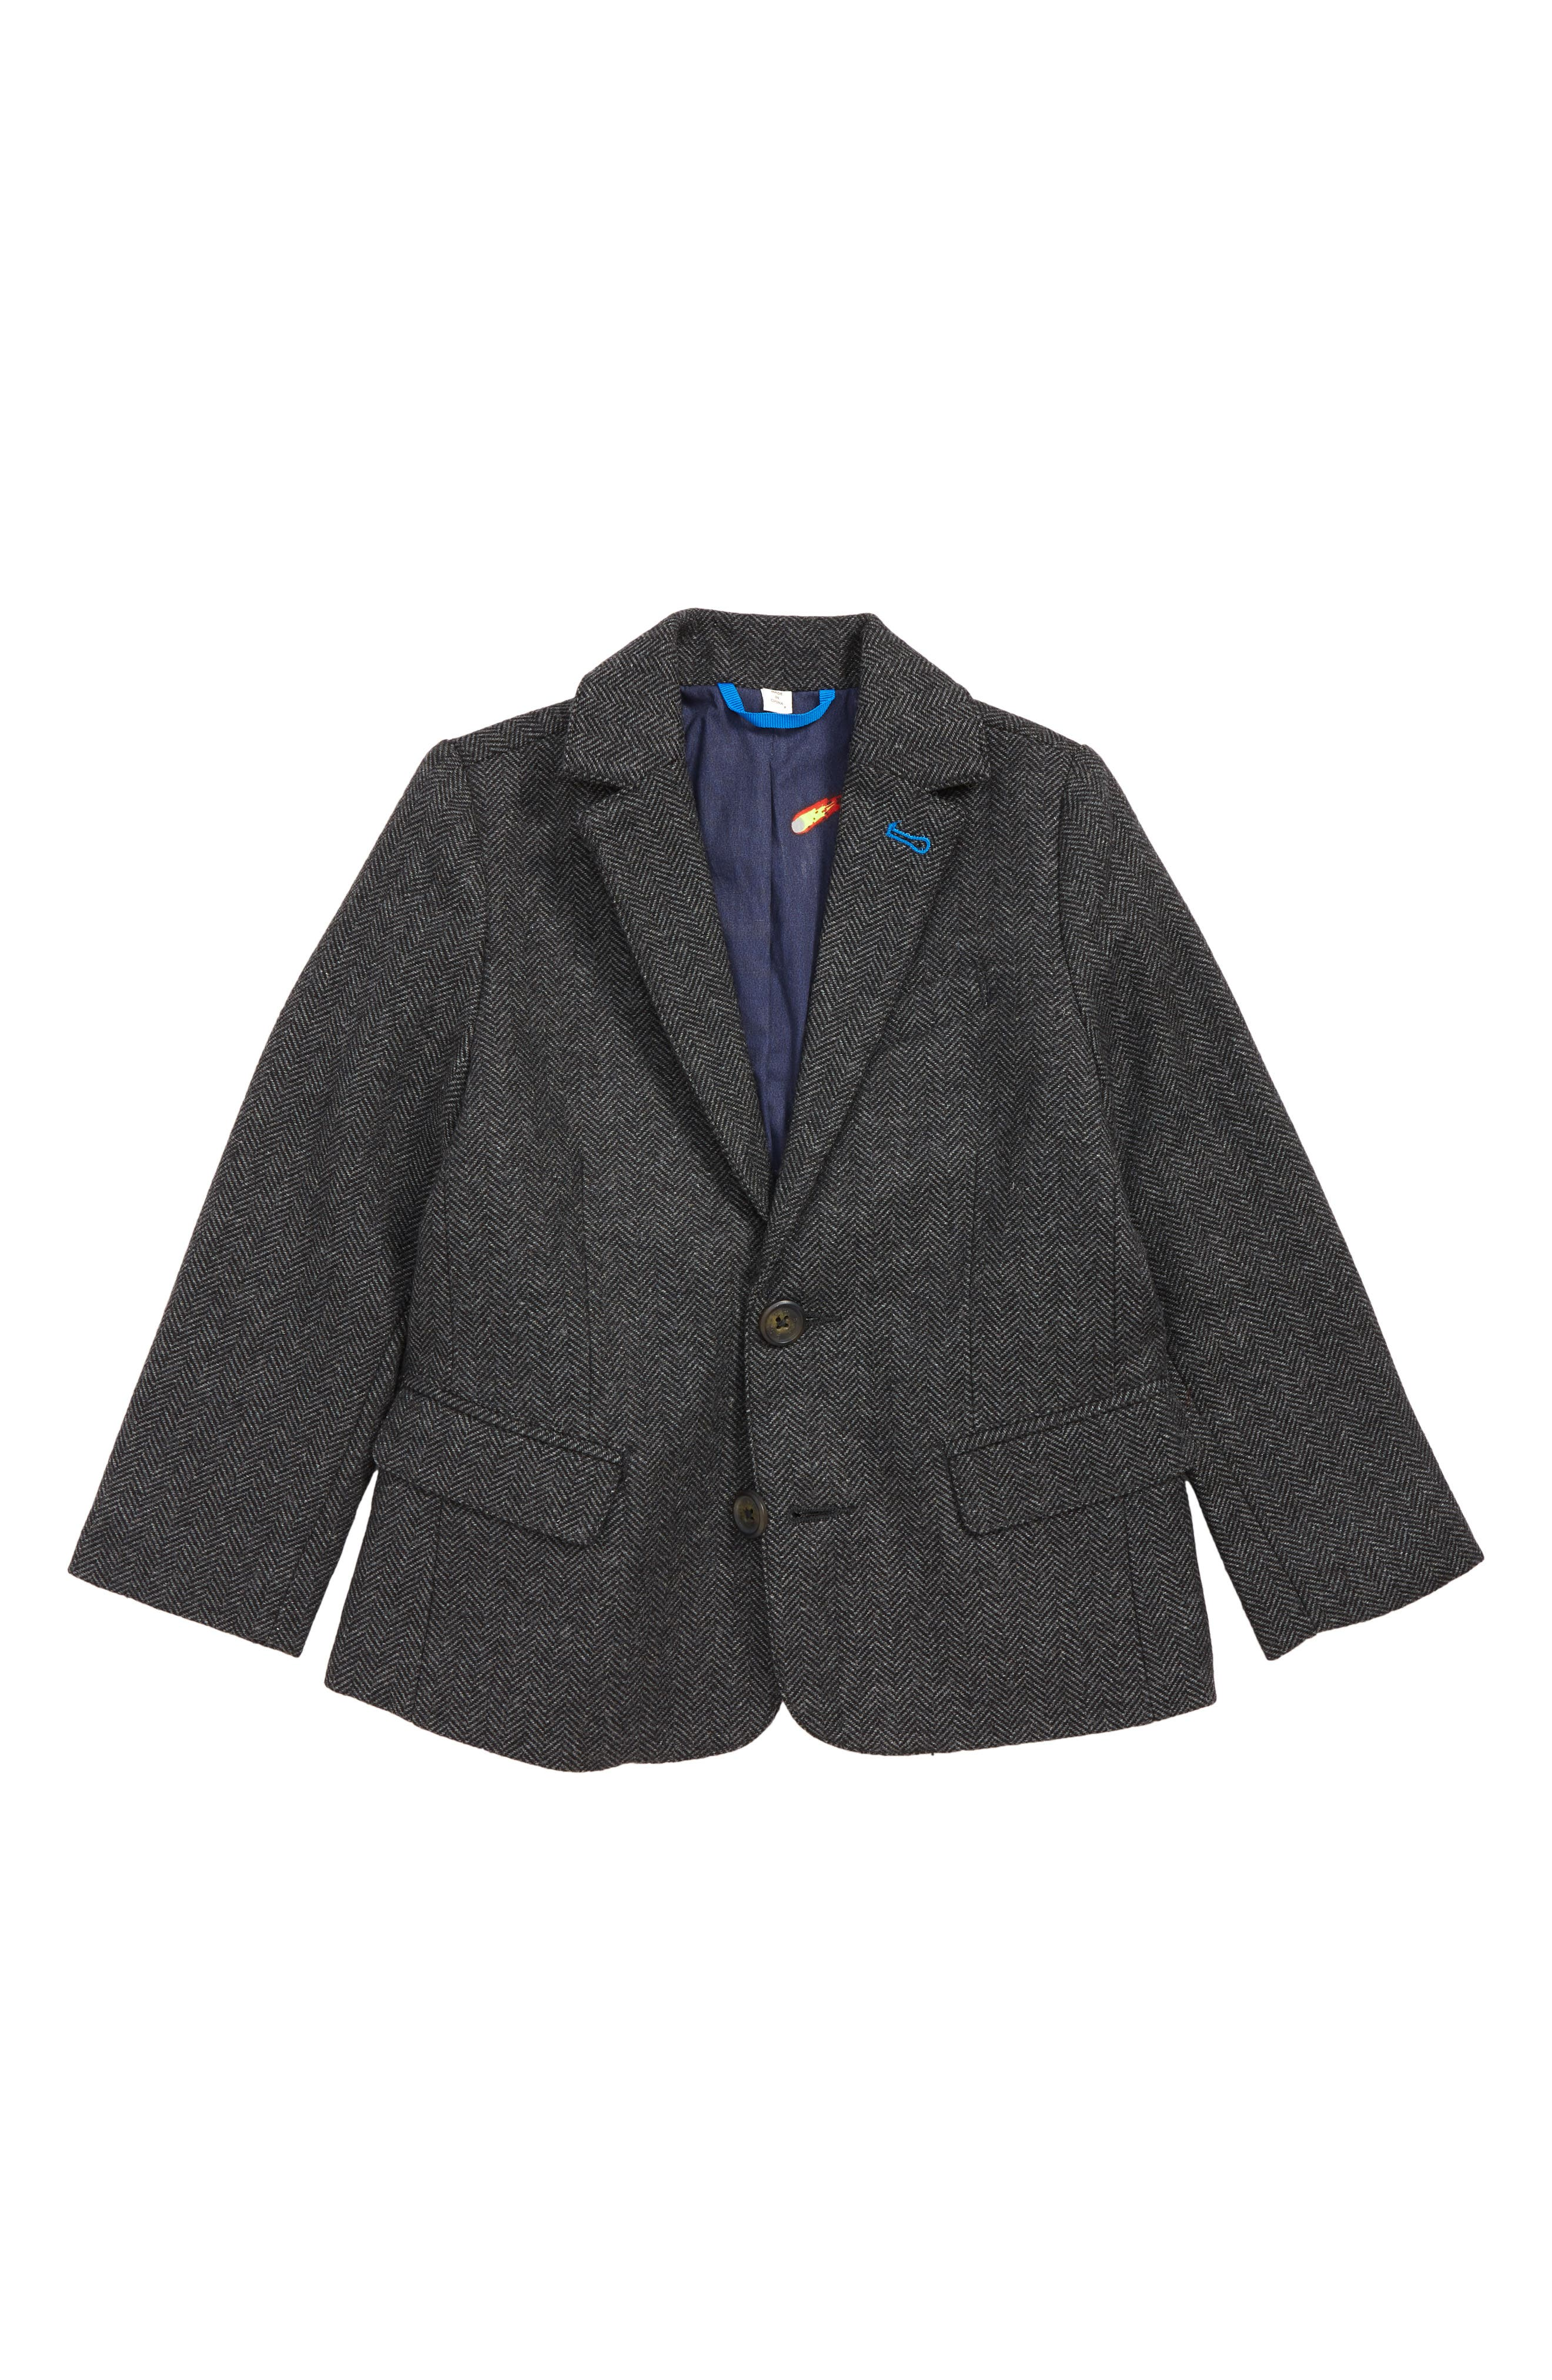 MINI BODEN, Party Blazer, Main thumbnail 1, color, 024